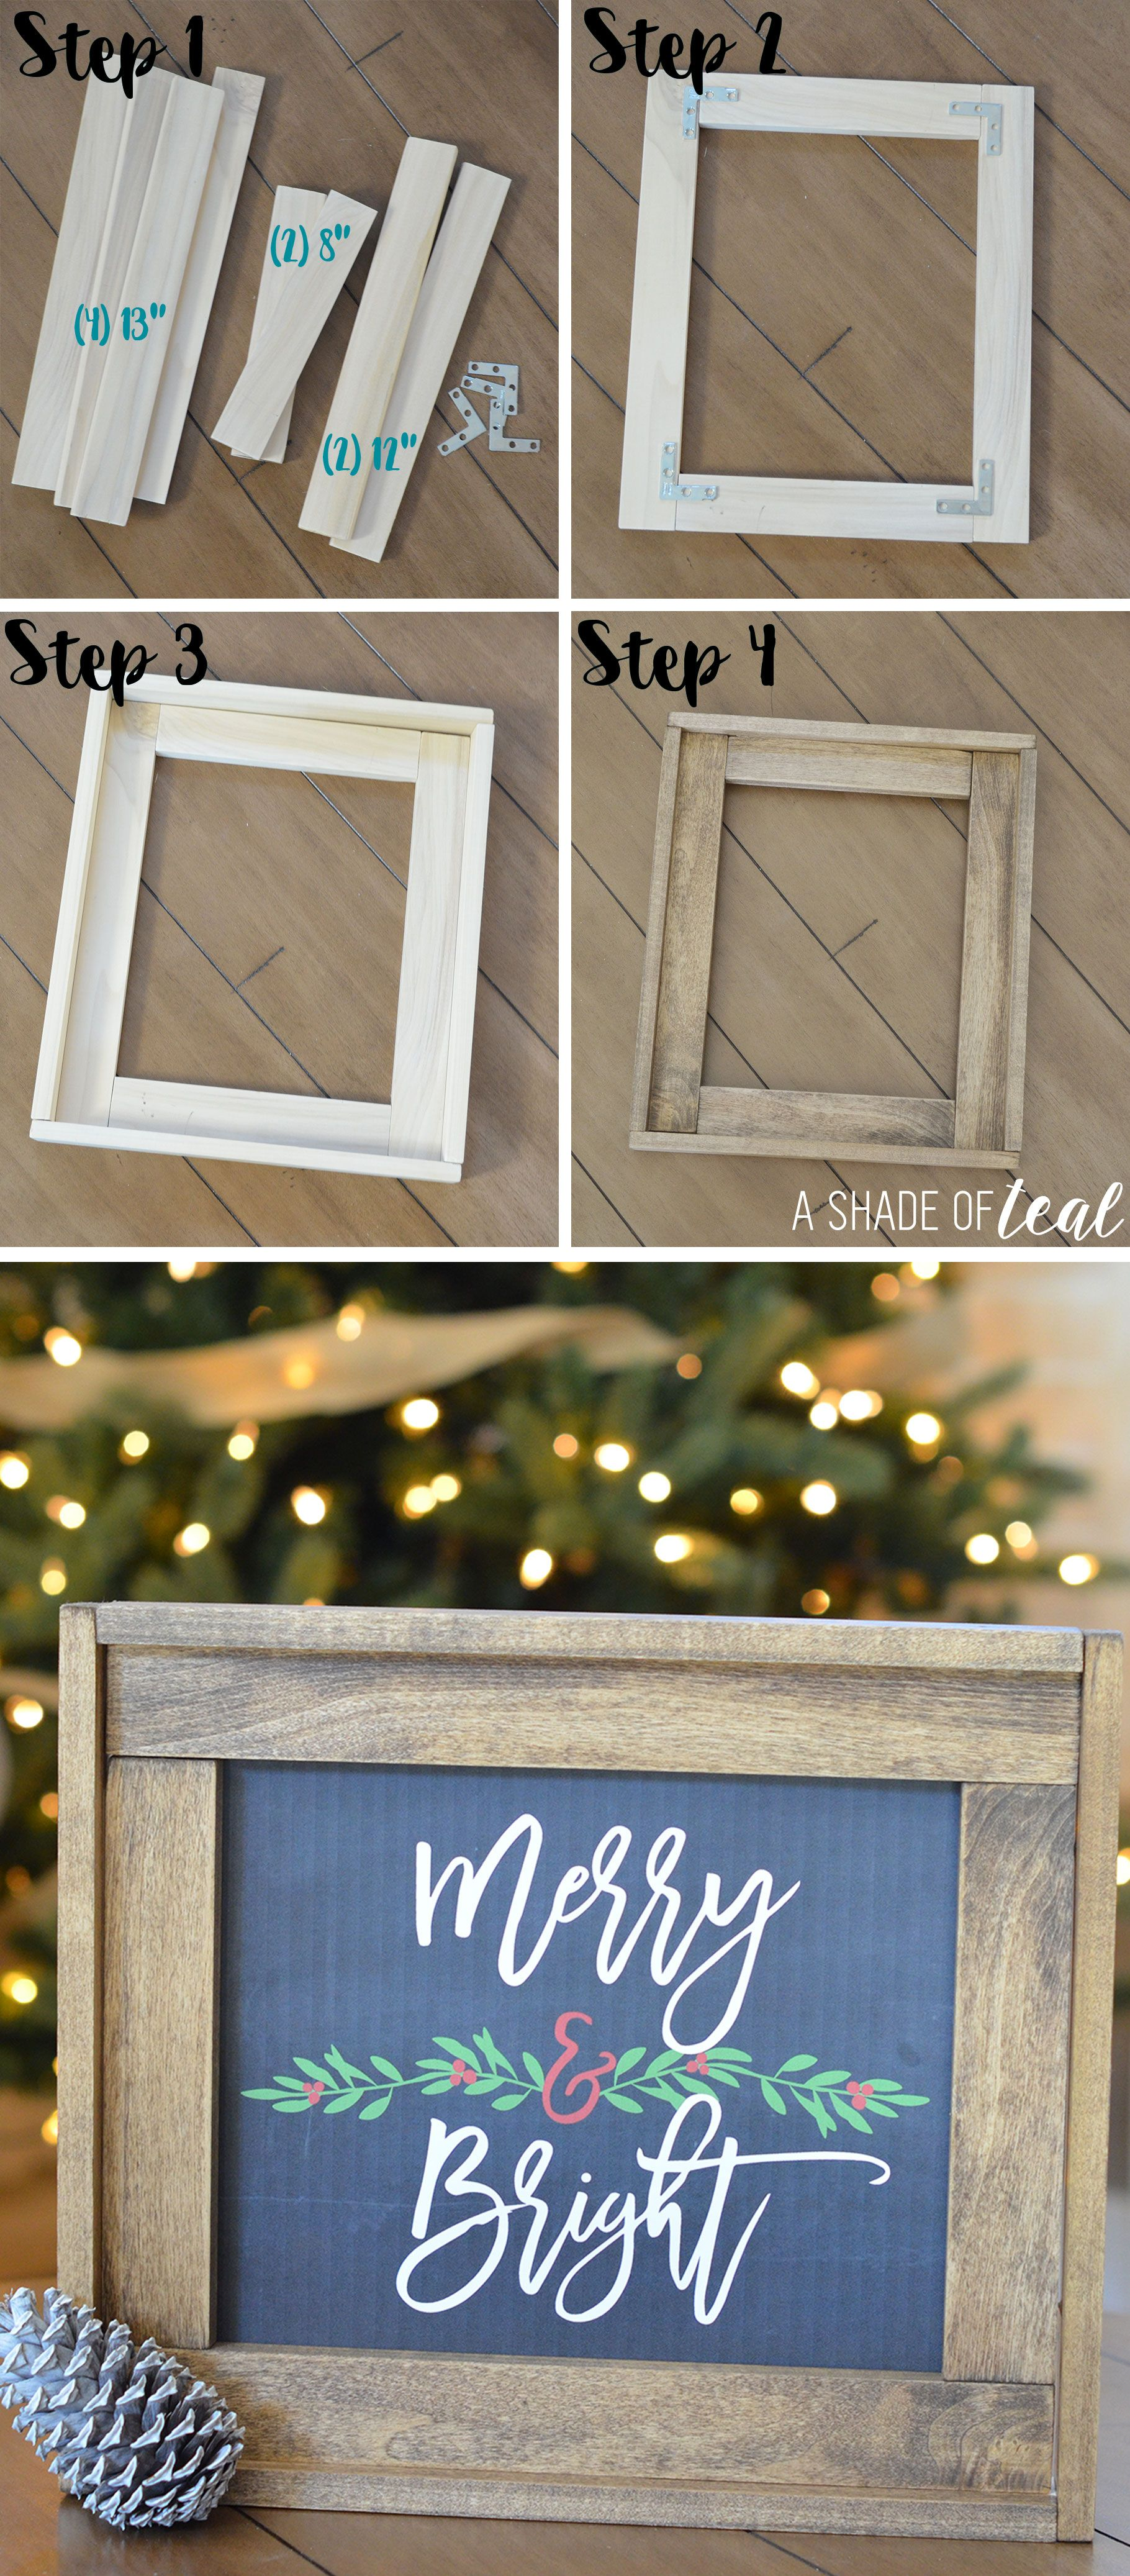 Christmas mantle update how to make a rustic wood frame rustic christmas mantle update how to make a rustic wood frame a shade of teal jeuxipadfo Image collections